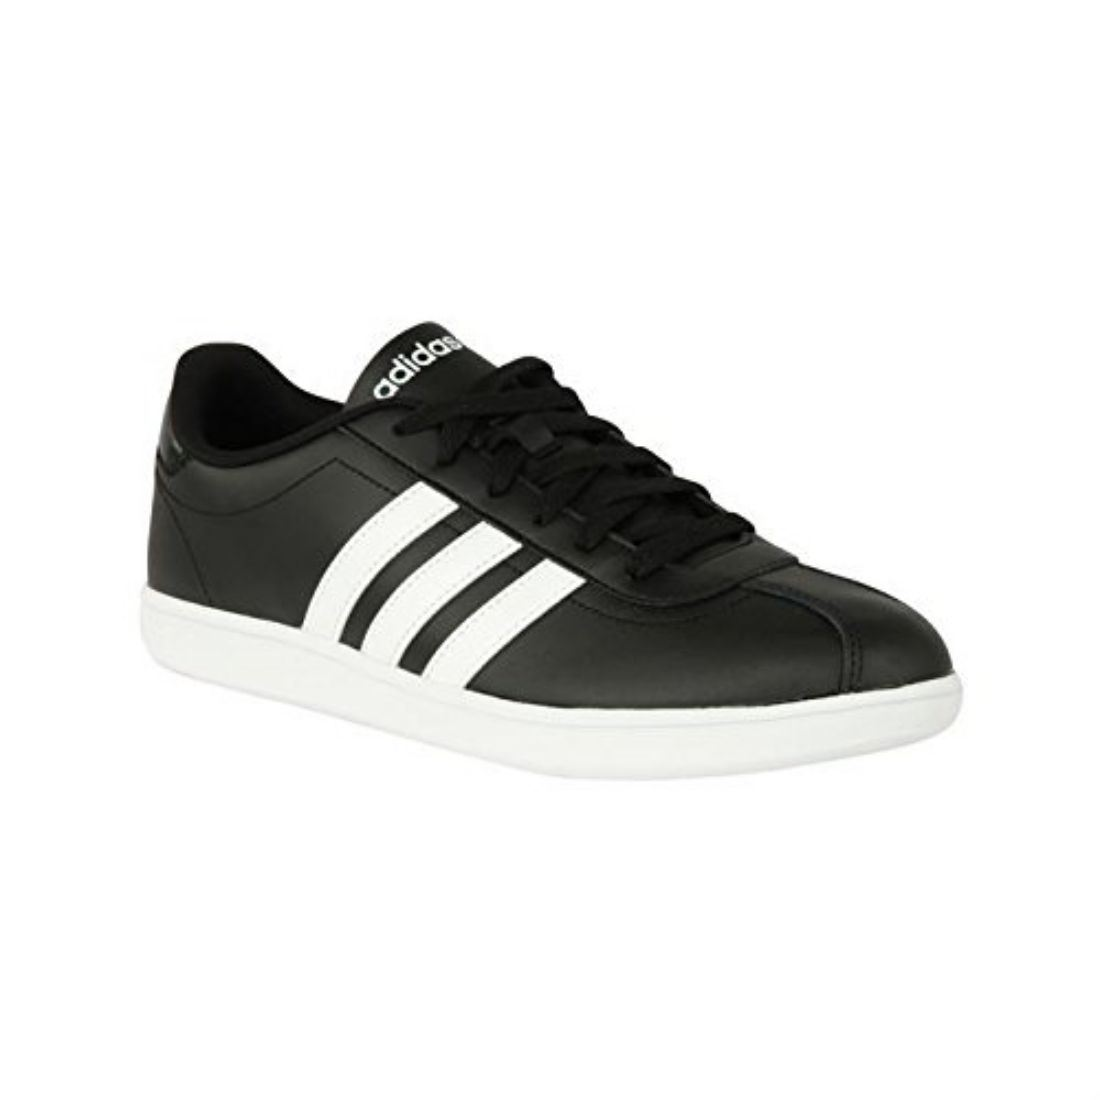 adidas neo mens vl court trainers lace up sport shoes panelled design footwear ebay. Black Bedroom Furniture Sets. Home Design Ideas